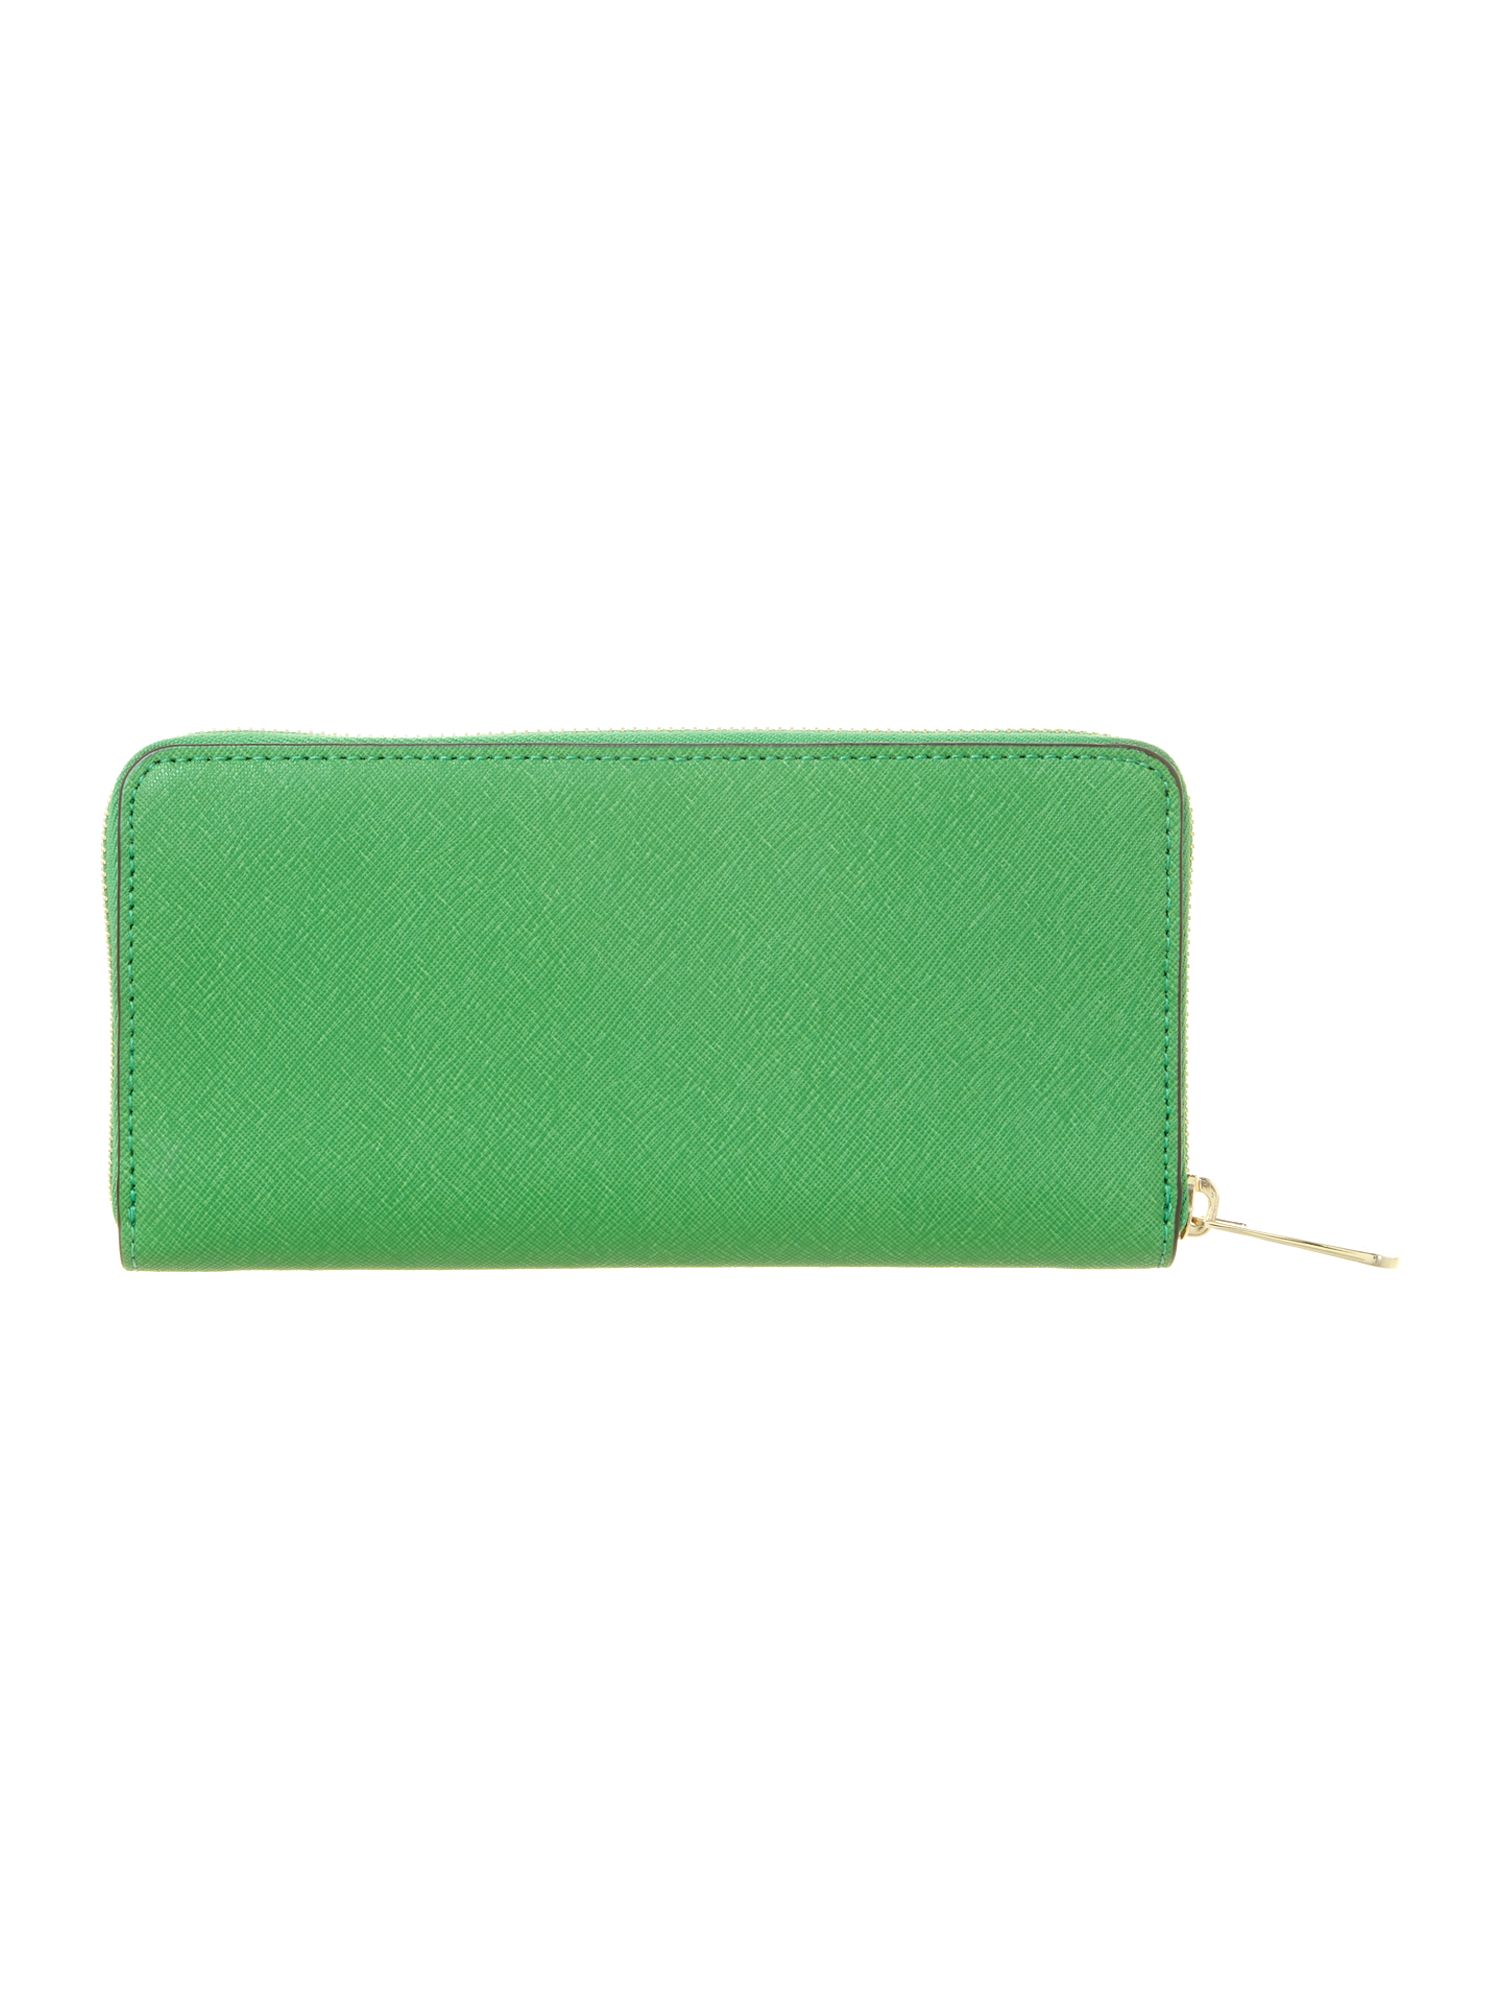 Jet set saffiano large green zip around purse